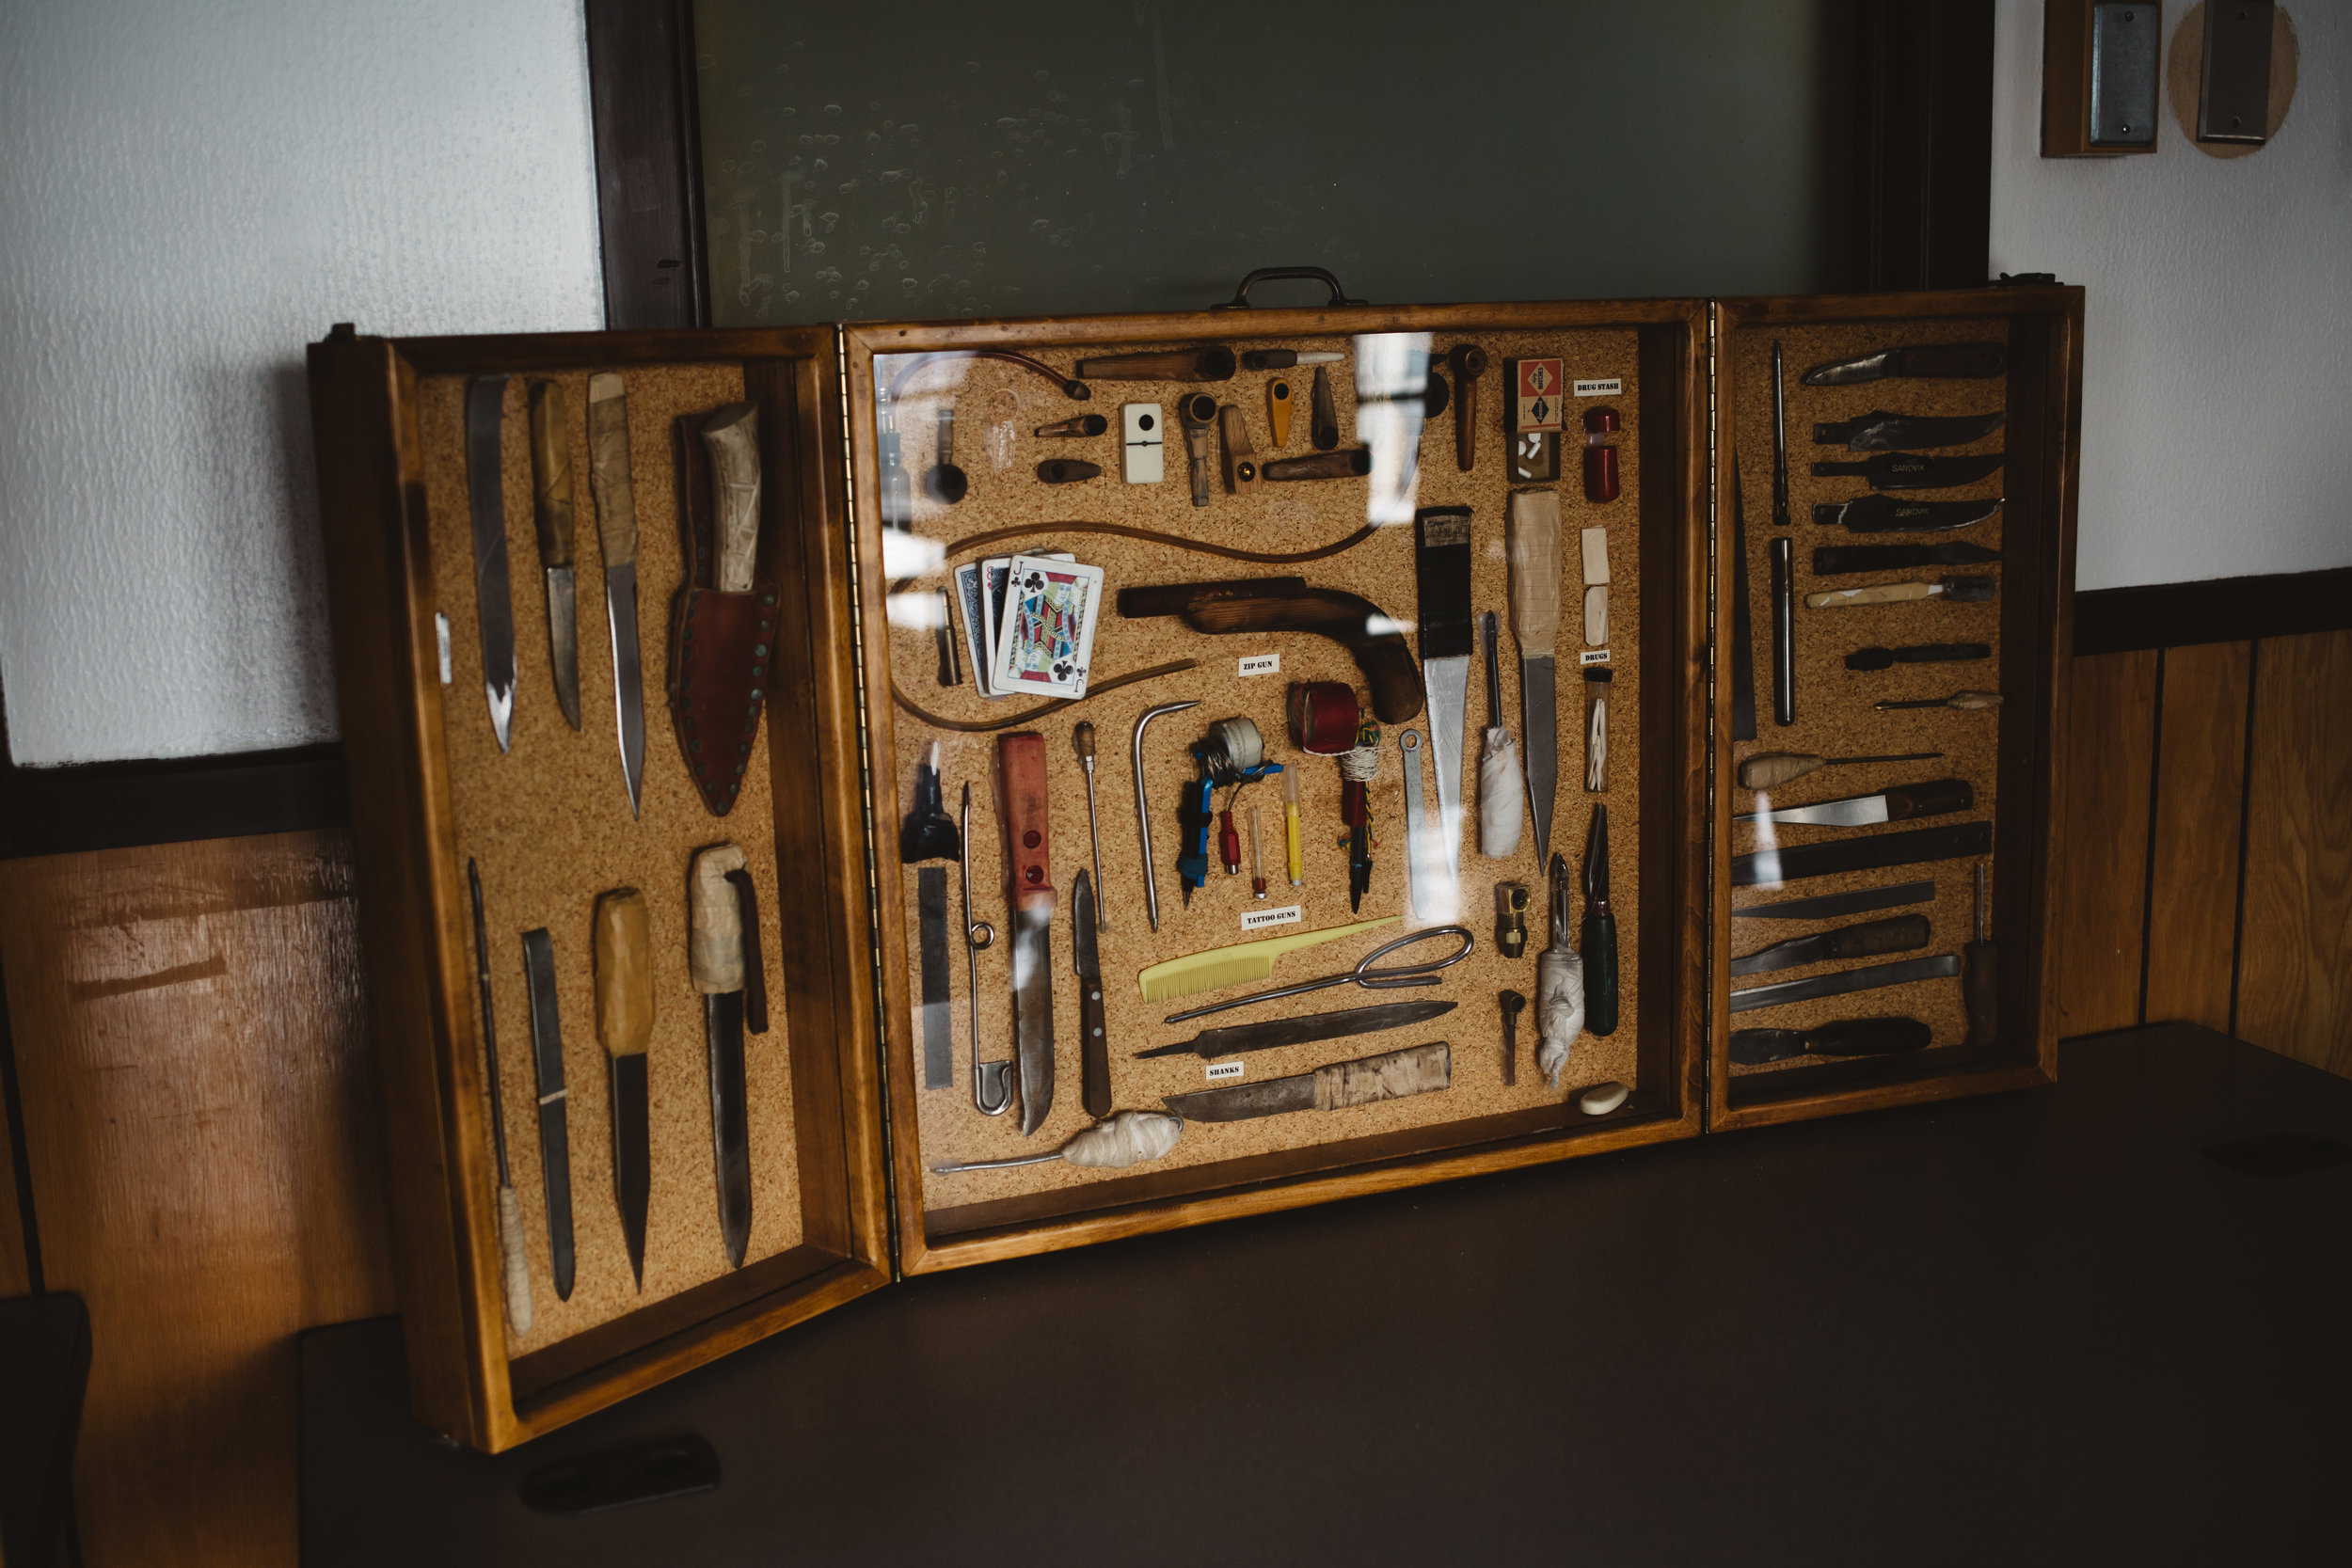 "A display case shows a varierty of confiscated contriban found in cells throughout the prison. After his lengthy shifts ended, Ashley attempted to leave work at the prison when he went home at night. But the daily stresses of his job had made their way into his home life. ""When you're working in a negative environment like a prison setting, what happens is you start creating these firm boundaries, and sometimes you take those boundaries outside of work. You start having these expectations, you stop trusting people and you can find yourself being really isolated"", Ashley said."